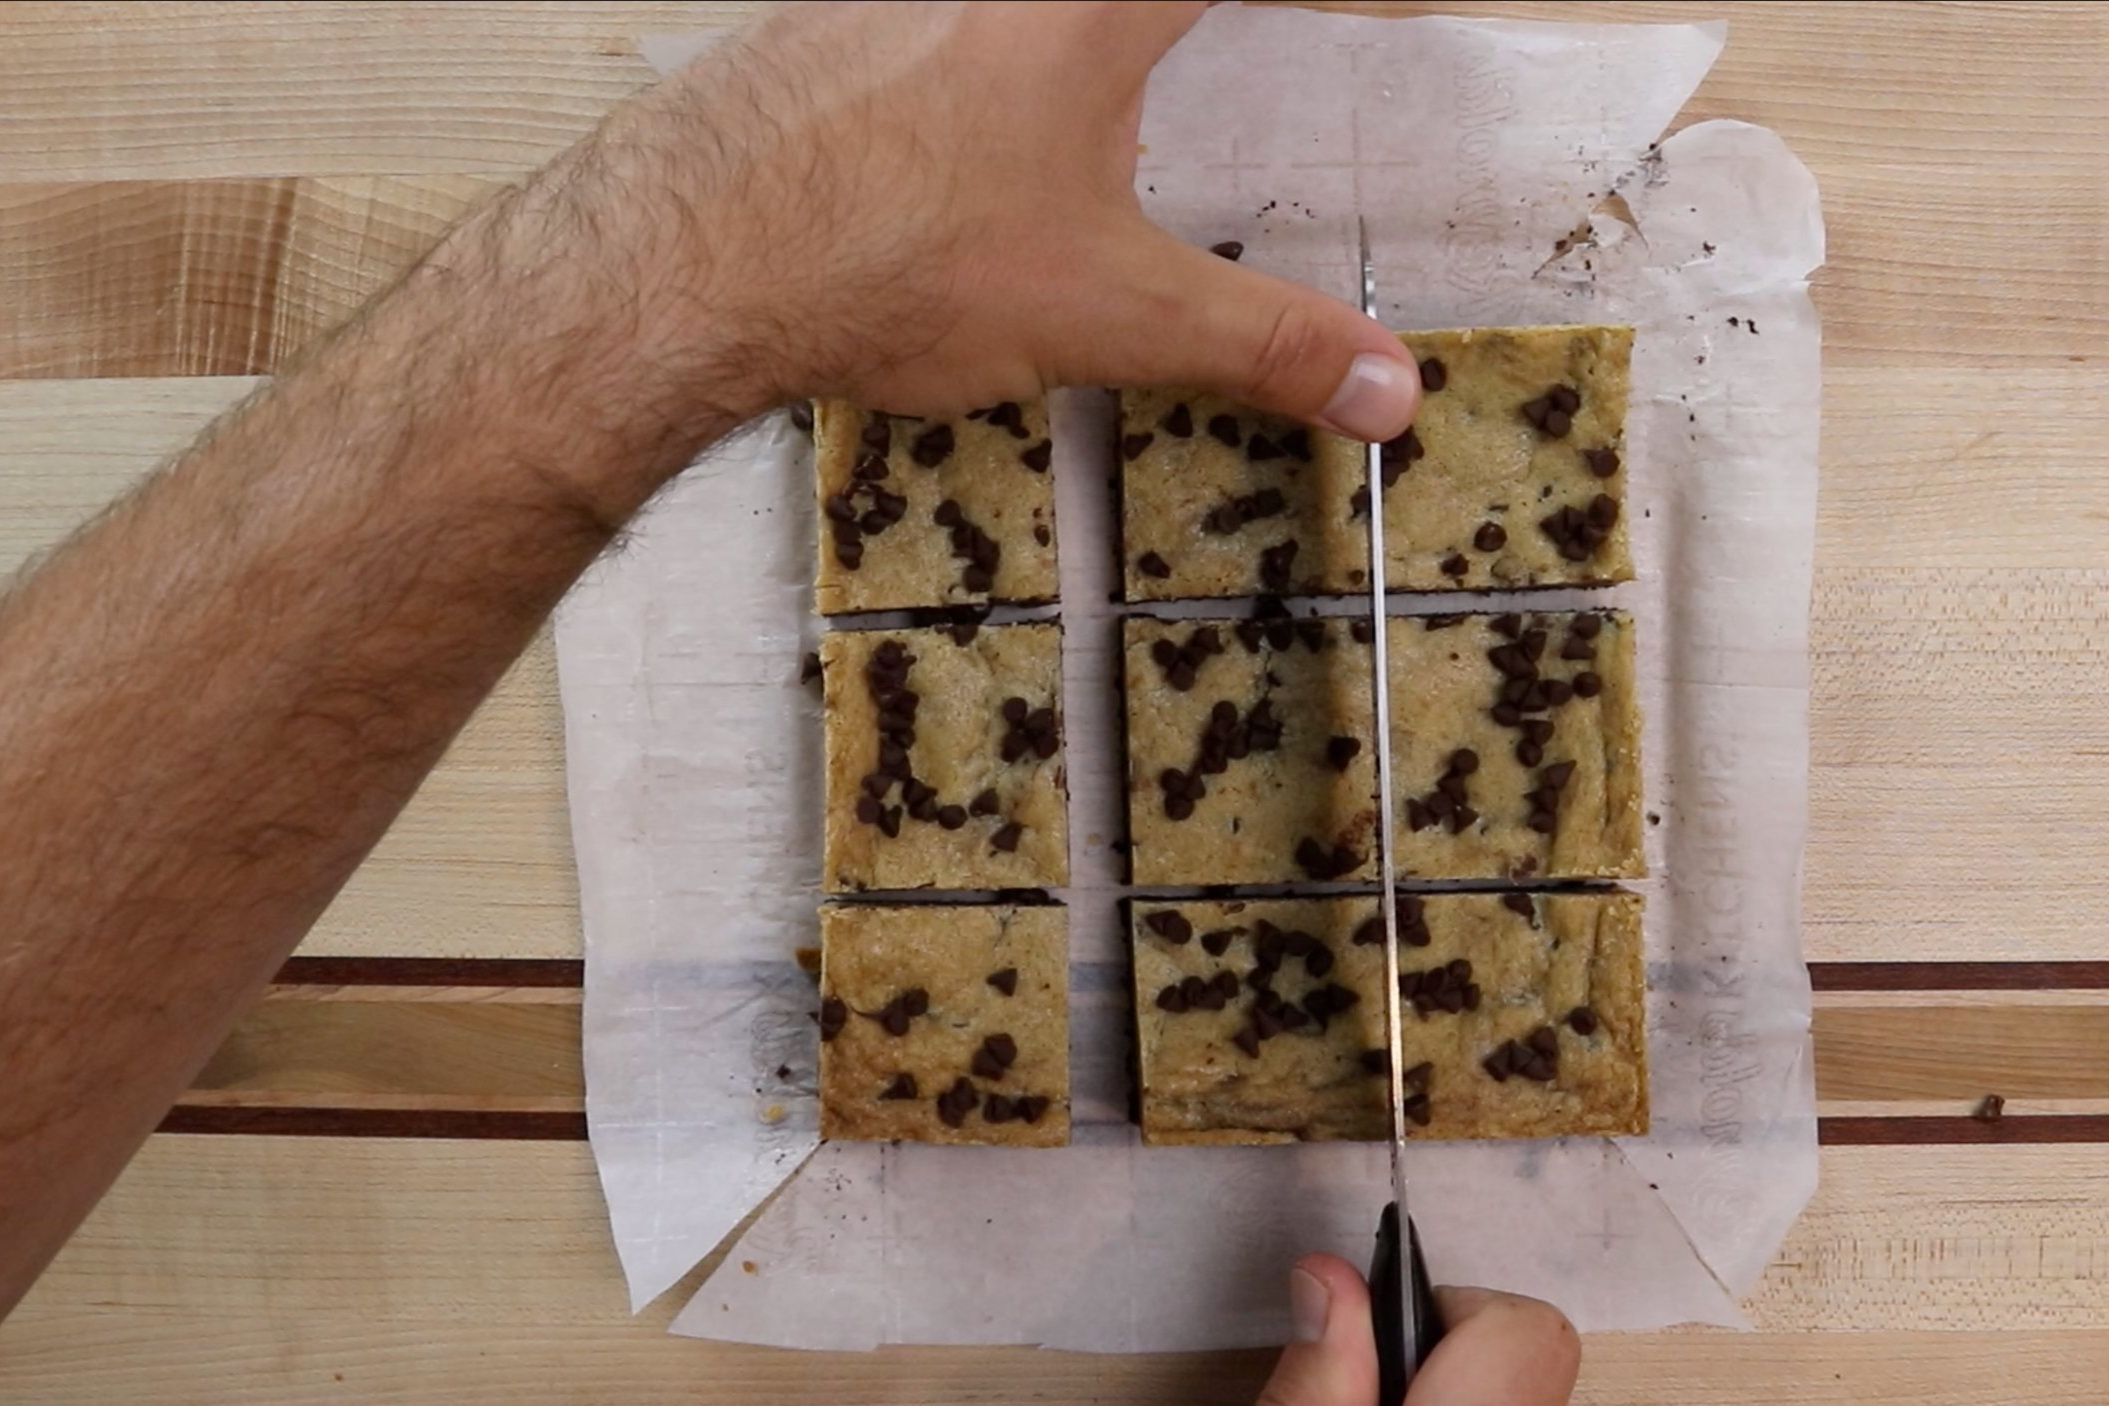 17. Cut bars into pieces using a serrated knife. Store in an airtight container for up to a week. -